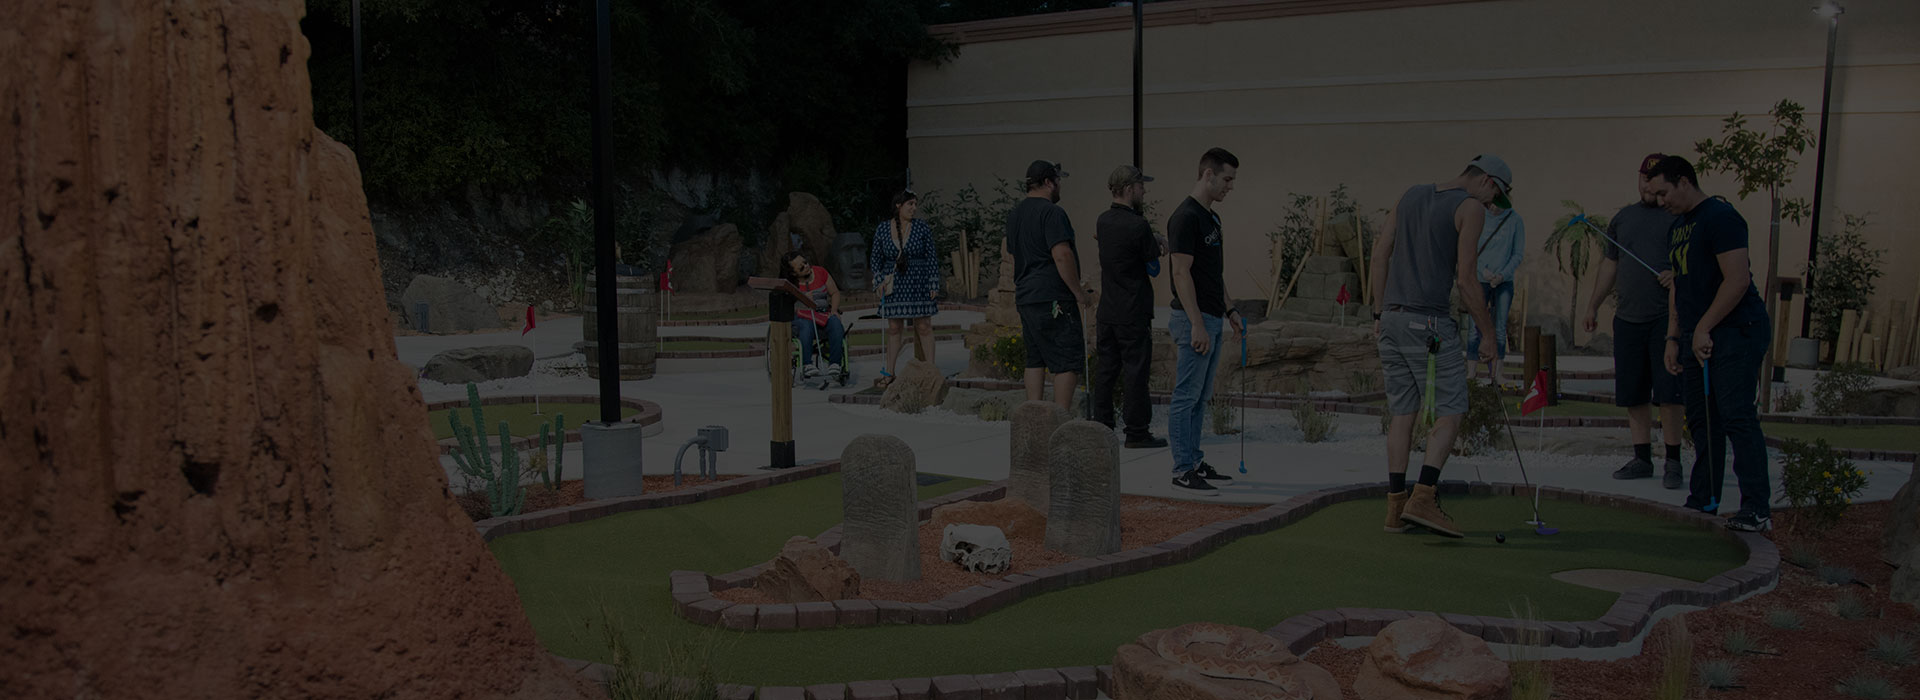 Miniature Golf - Central Coast Activities - Mini Golf - Atascadero Miniature Golf - Mr Putters Putt-Putt